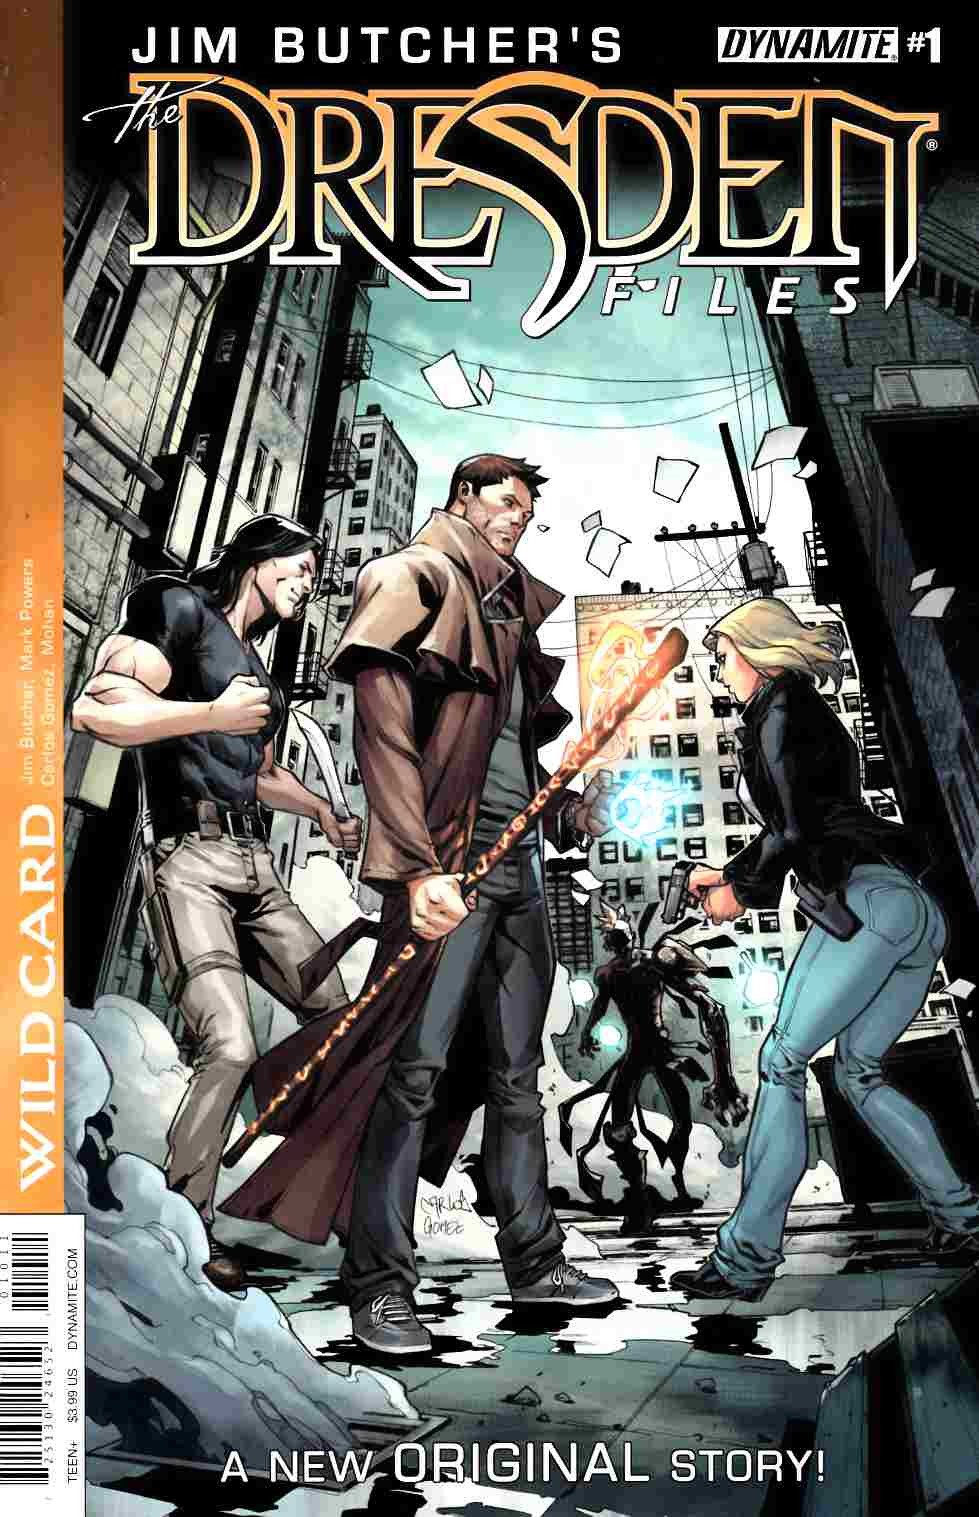 Jim Butcher Dresden Files Wild Card #1 [Dynamite Comic]